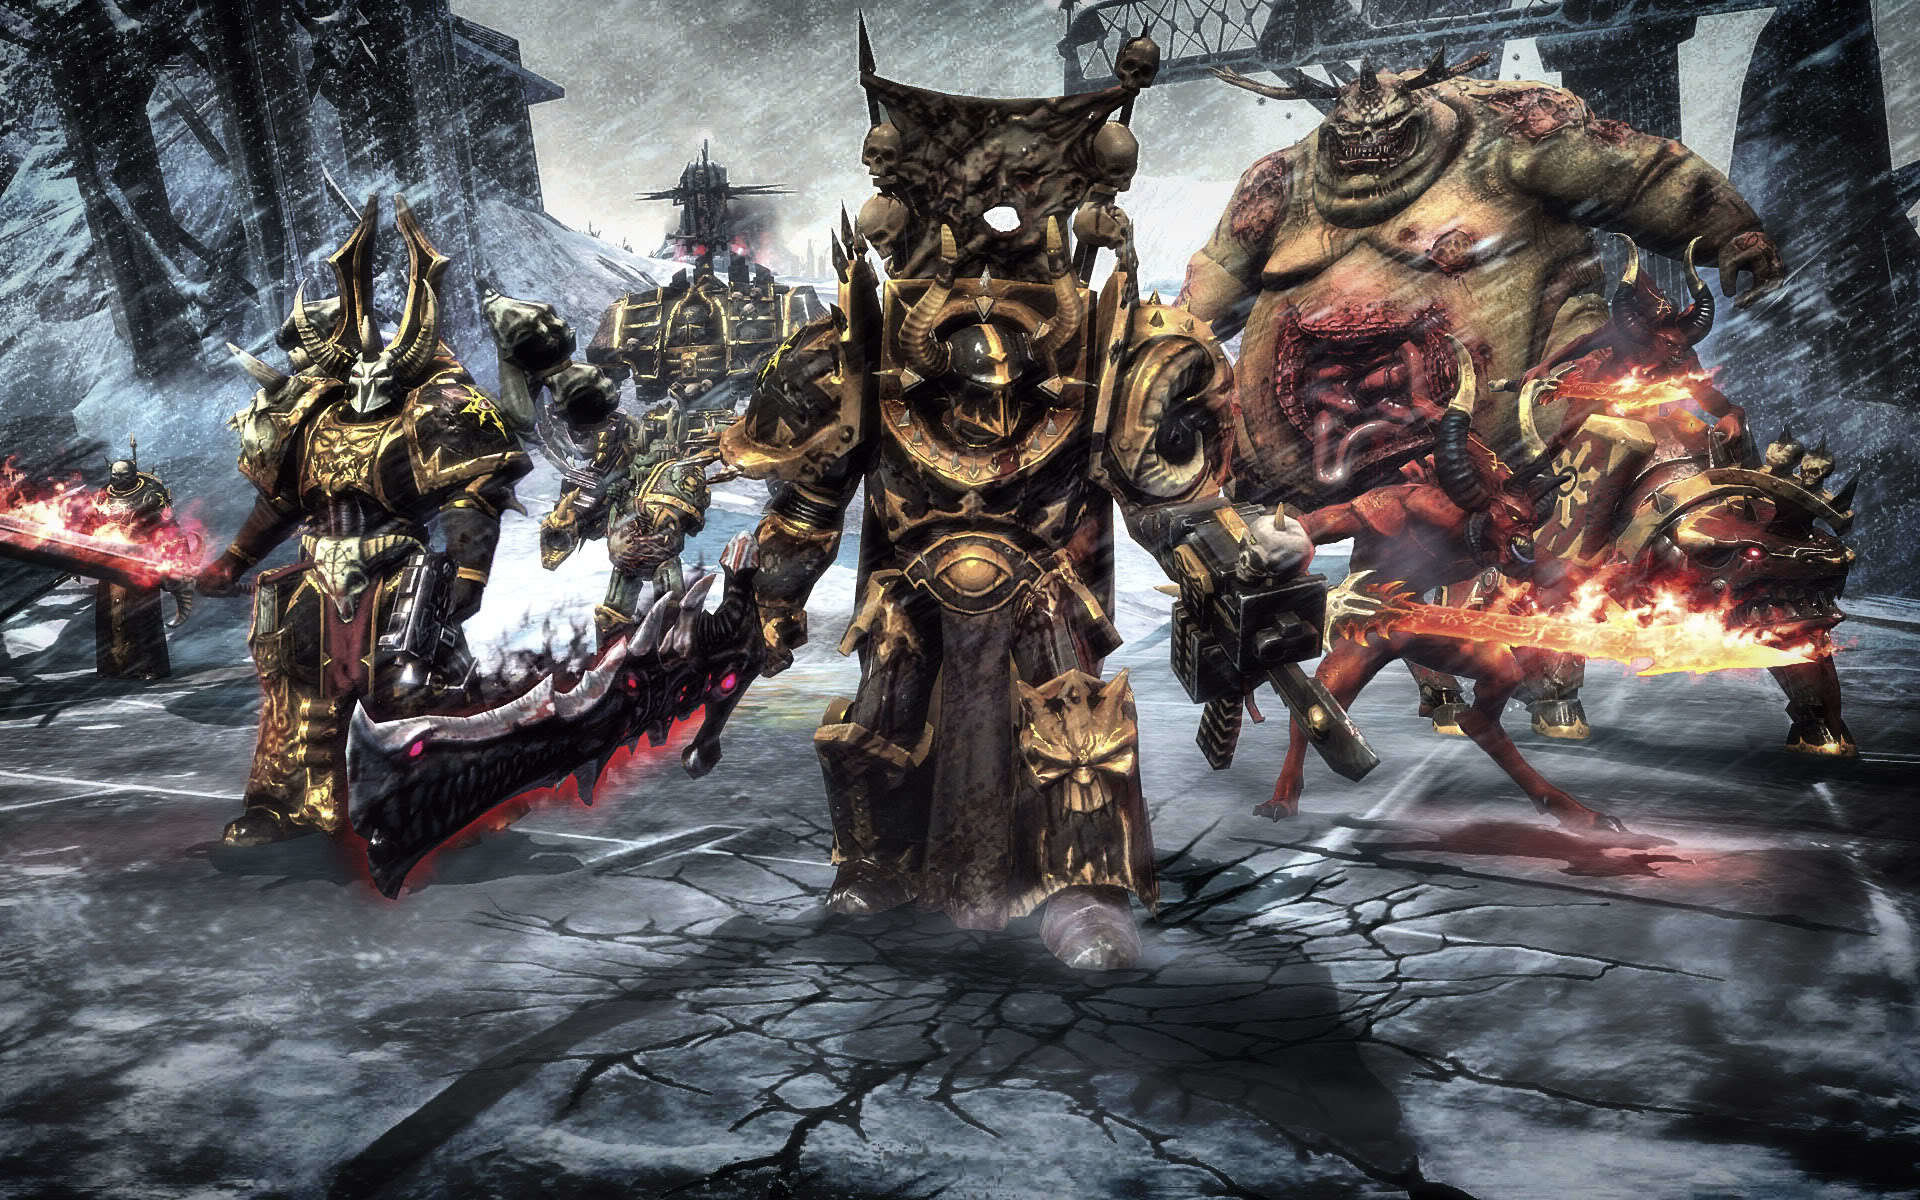 1920x1200 Warhammer warhammer 40k nurgle space marine chaos wallpaper background